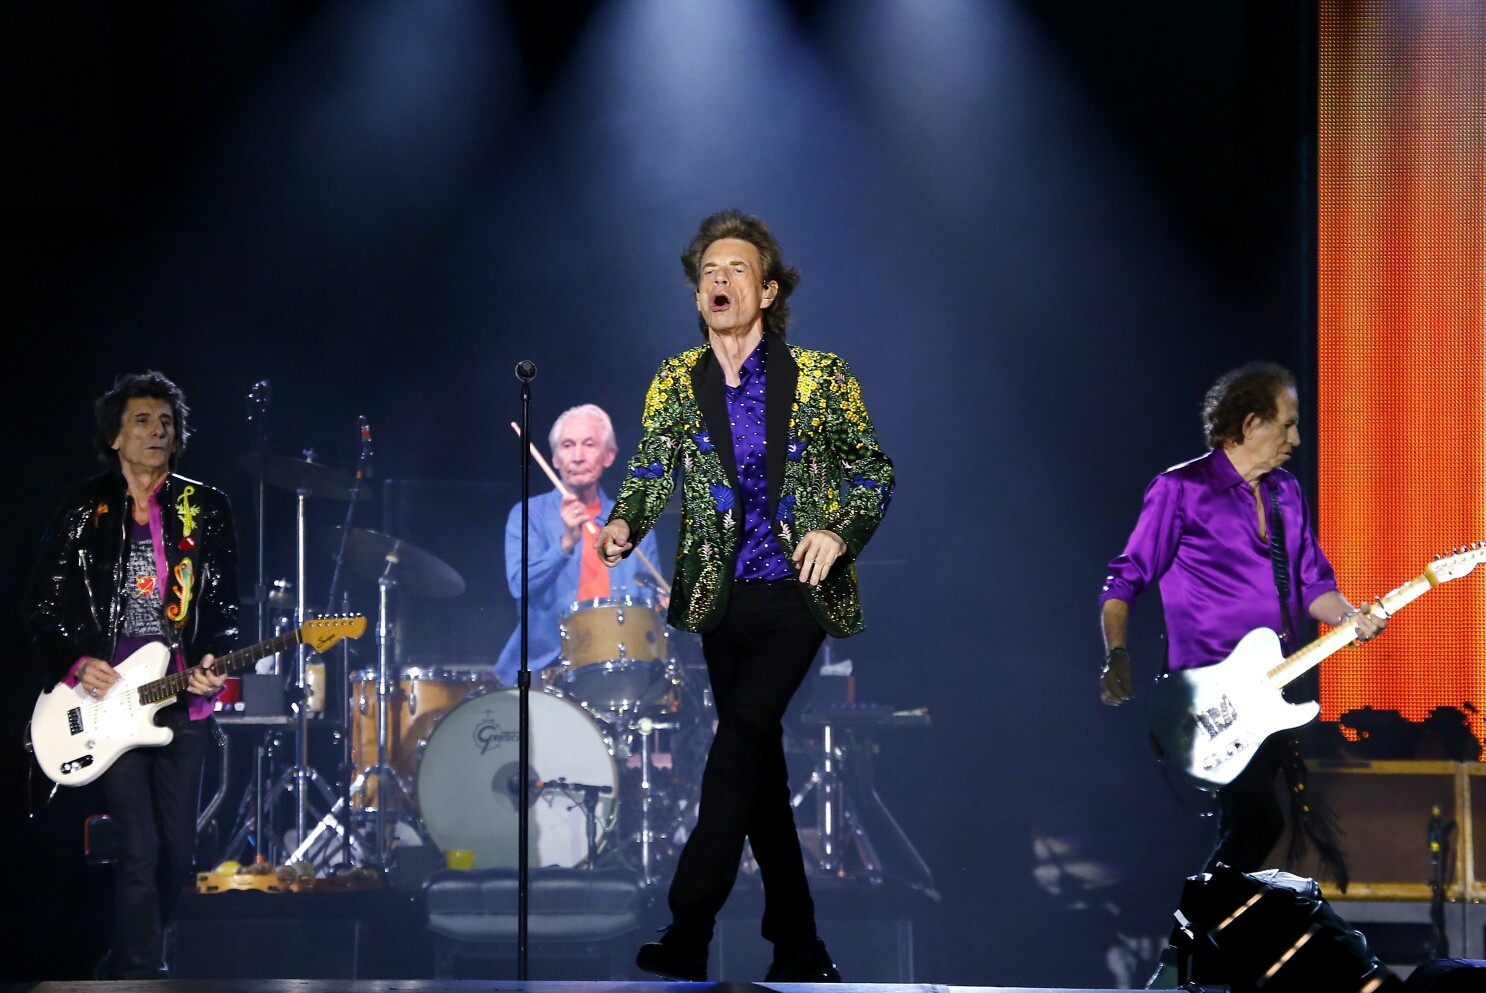 The Rolling Stones at the Rose Bowl, alive and kicking